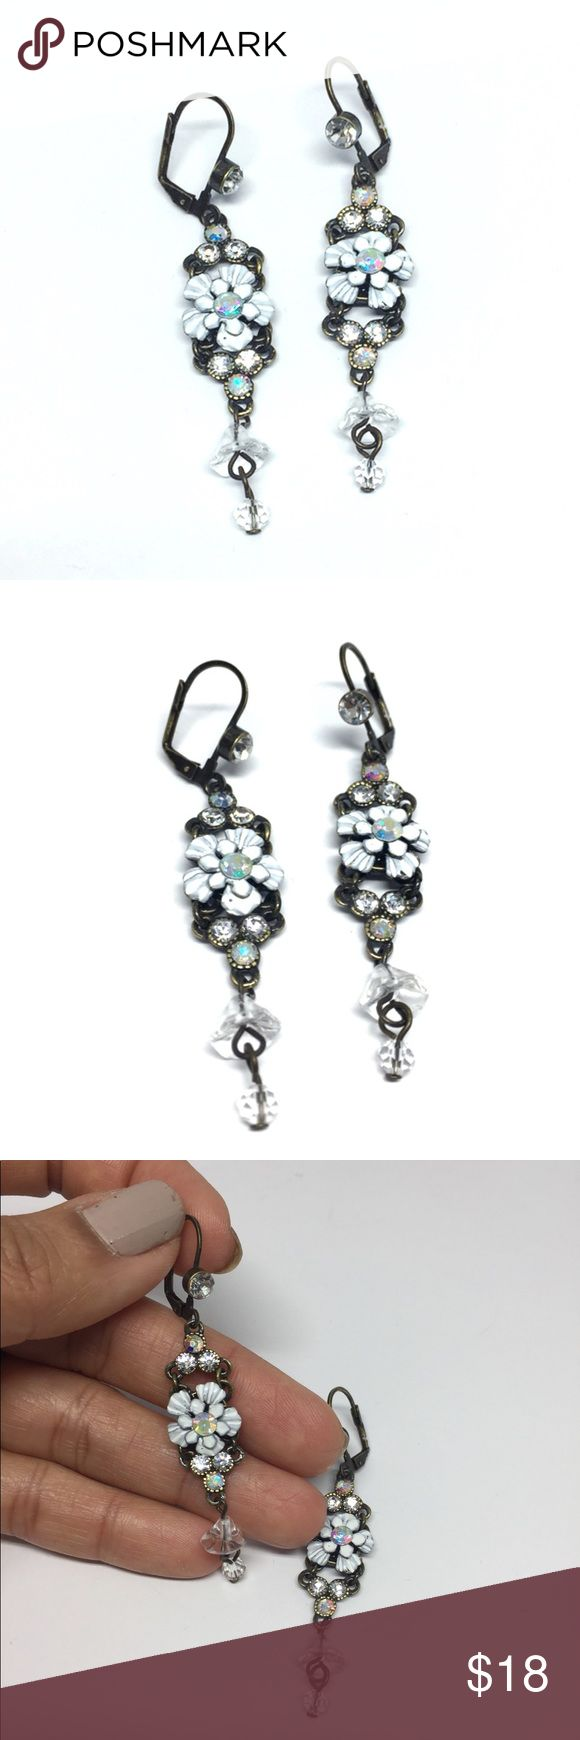 Vintage Look Flowers Drop Earring Add this beautiful Vintage look to your daily. Rhodium is a precious metal, a member of the PLATINUM family. Rhodium electroplating is used, especially on jewelry, to provide a surface that will resist scratches and tarnish. Rhodium plating is most often found on white gold. •Material: Metal, Tin alloy, anti allergic, lead and nickel compliant. •BRAND NEW WITH TAG•BUNDLE TO SAVE•SAME DAY OR NEXT DAY SHIPPING• 🔴I PRICES MY ITEMS REALLY LOW🔴 NO LAWBALLING  (…